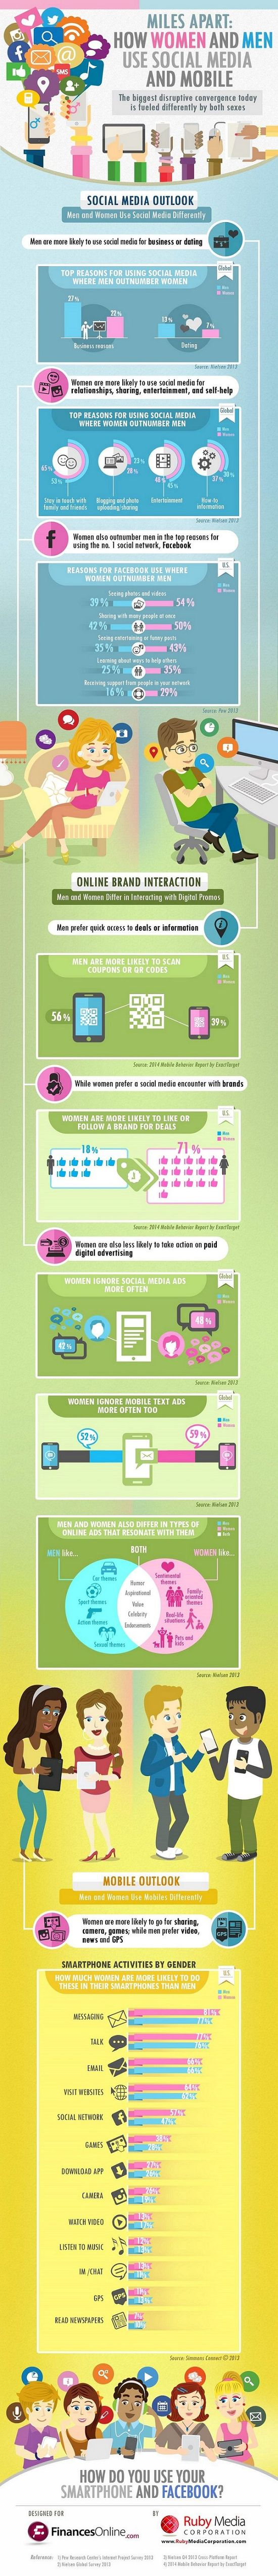 Miles Apart -- How Women and Men Use Social Media and Mobile Devices